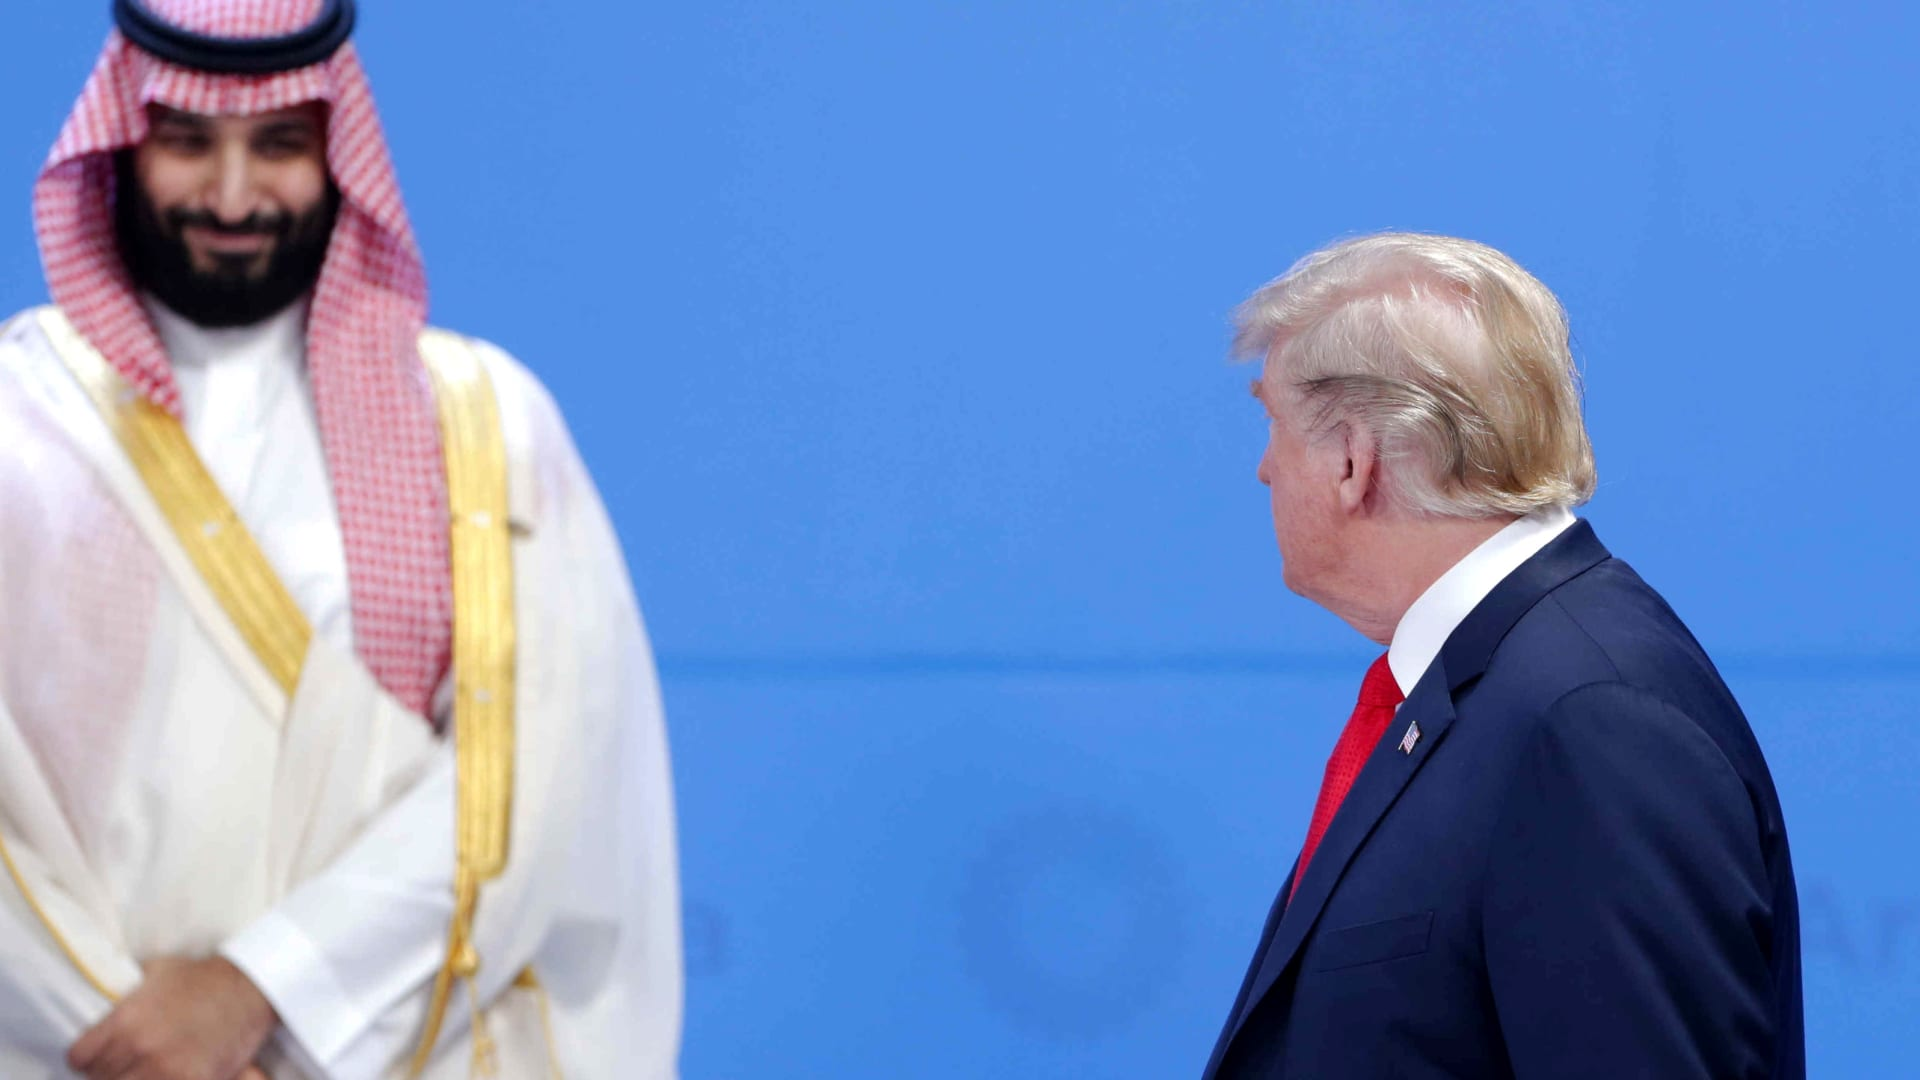 U.S. President Donald Trump looks over at Crown Prince of Saudi Arabia Mohammad bin Salman al-Saud as they line up for the family photo during the opening day of Argentina G20 Leaders' Summit 2018 at Costa Salguero on November 30, 2018 in Buenos Aires, Argentina.